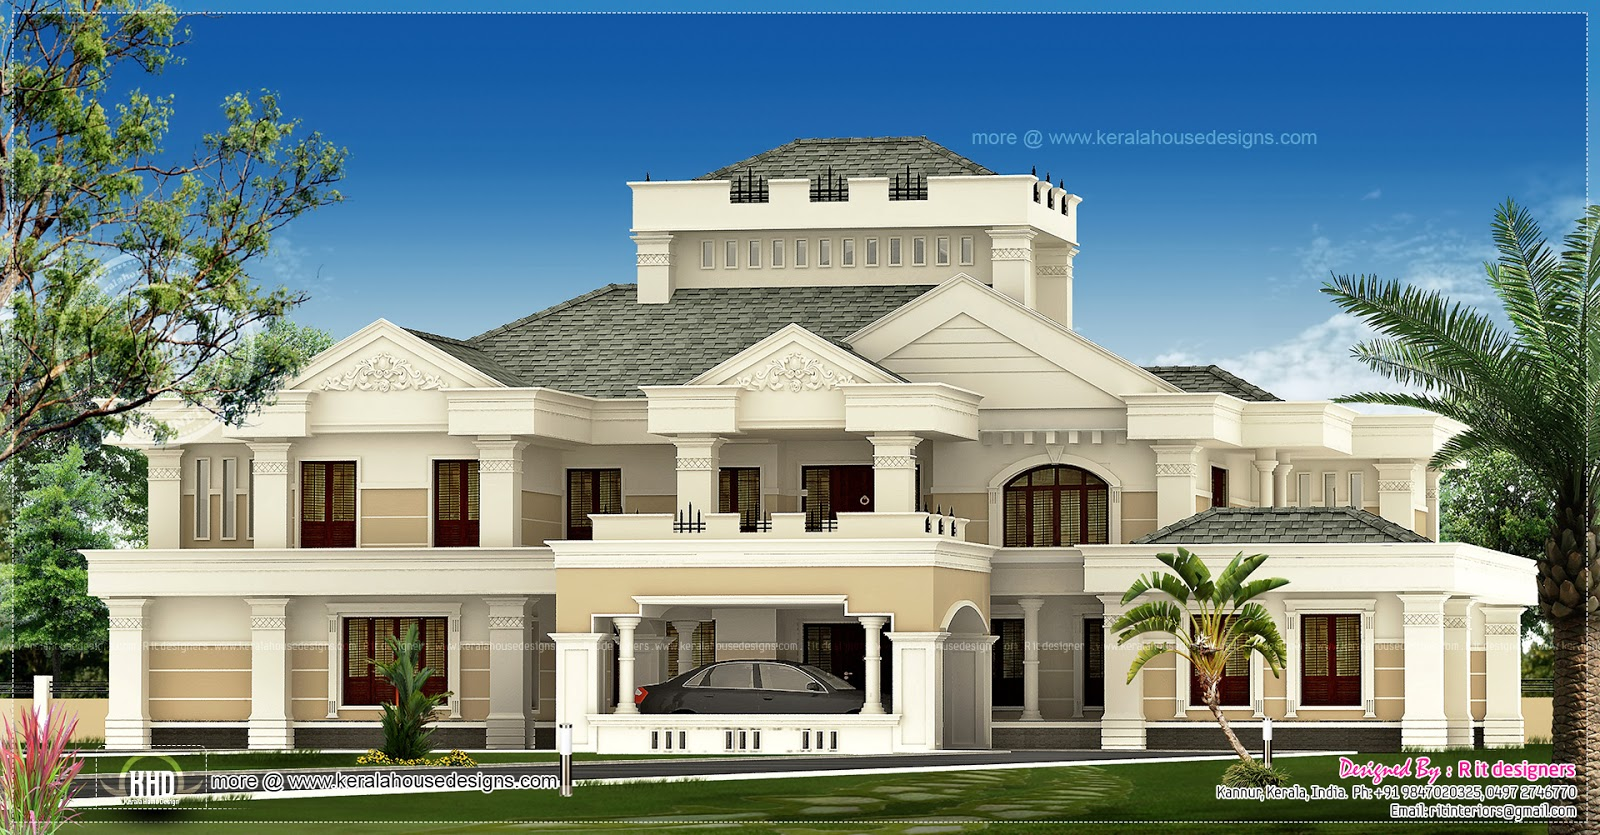 Super luxury kerala house exterior house design plans for Home plans luxury